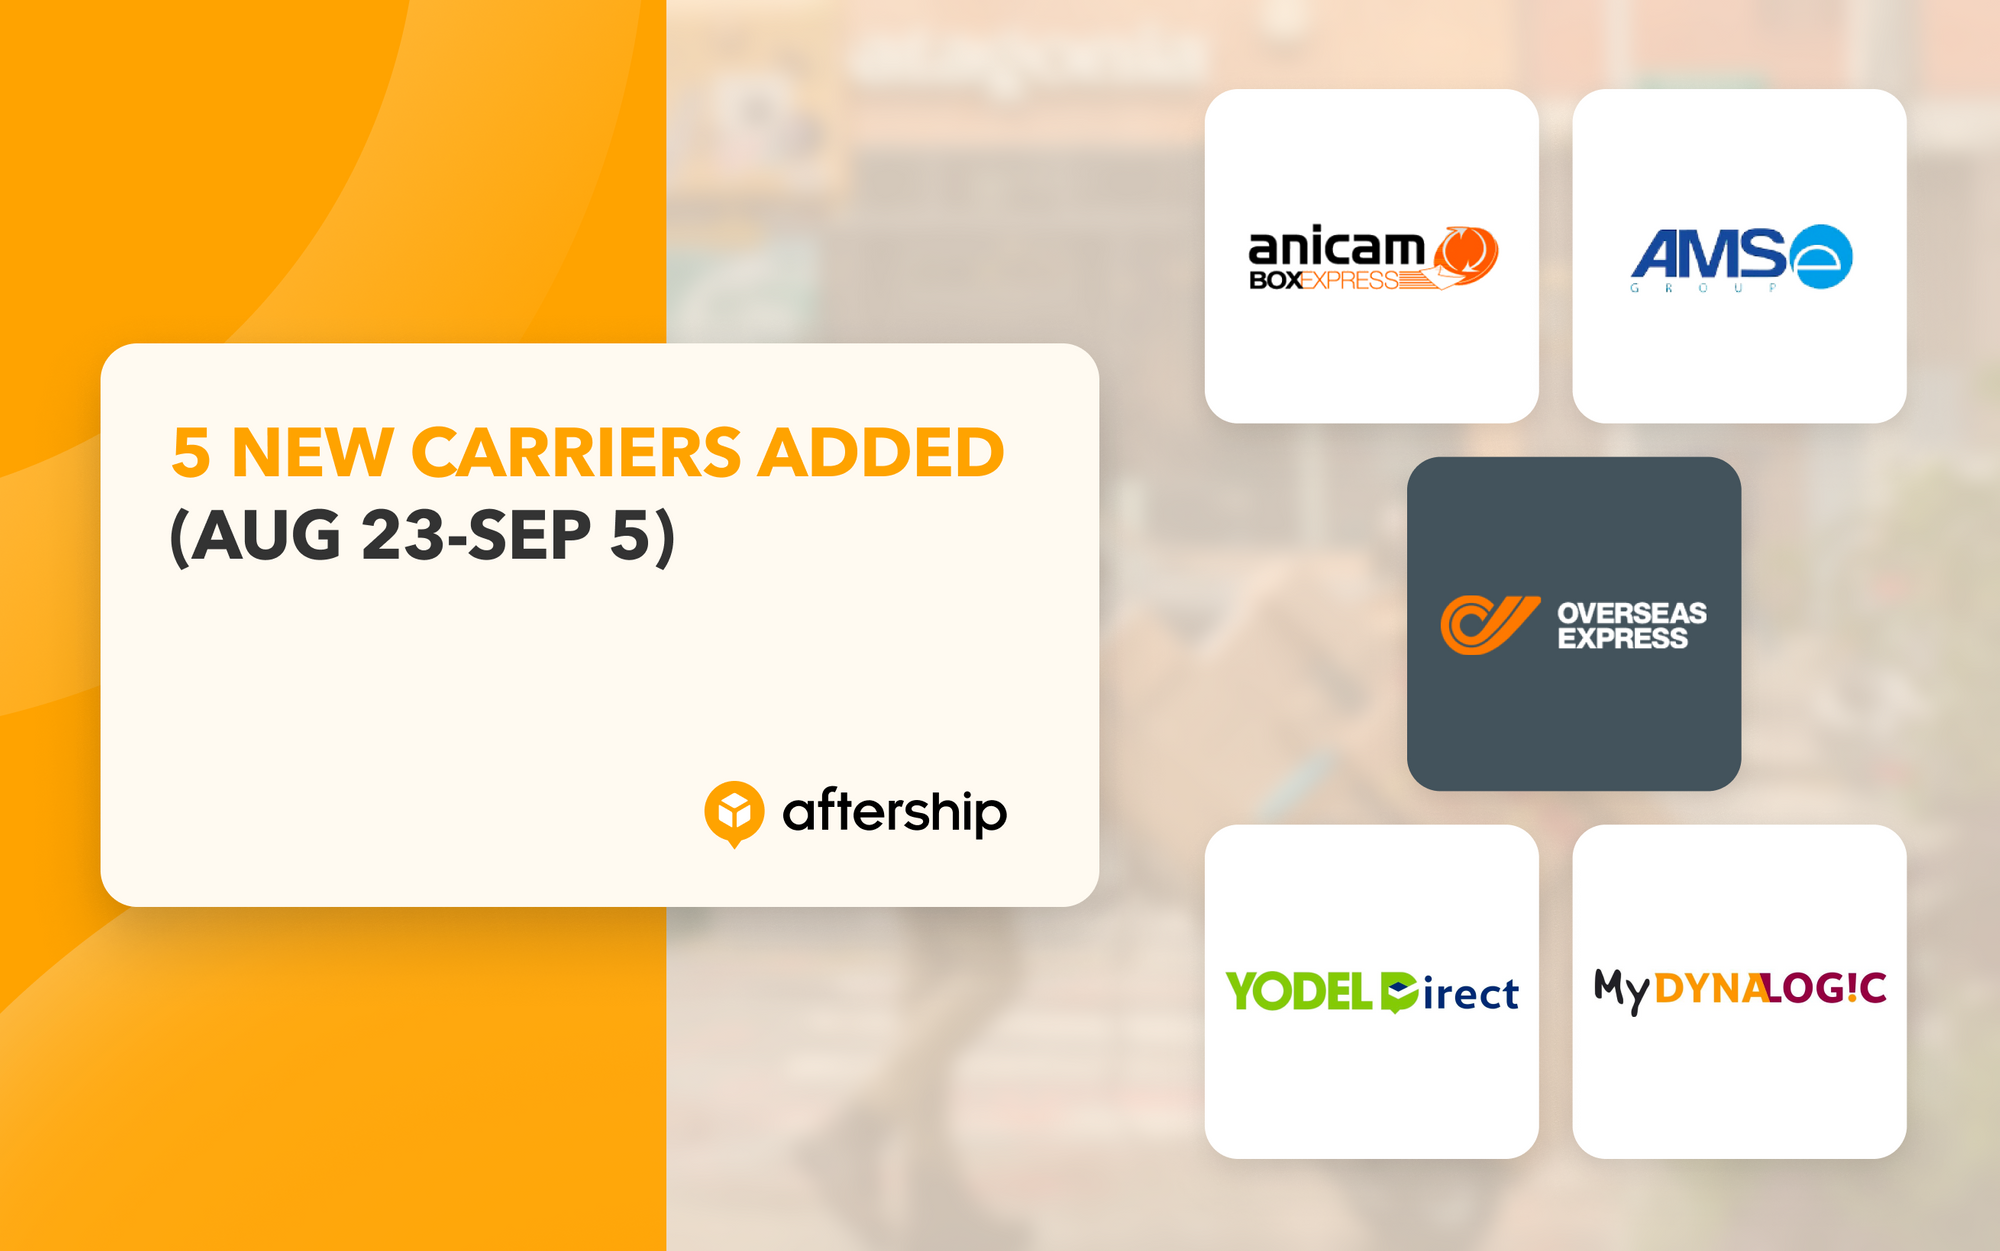 AfterShip adds 5 new couriers in the last two weeks (23rd August 2021 to 5th September 2021